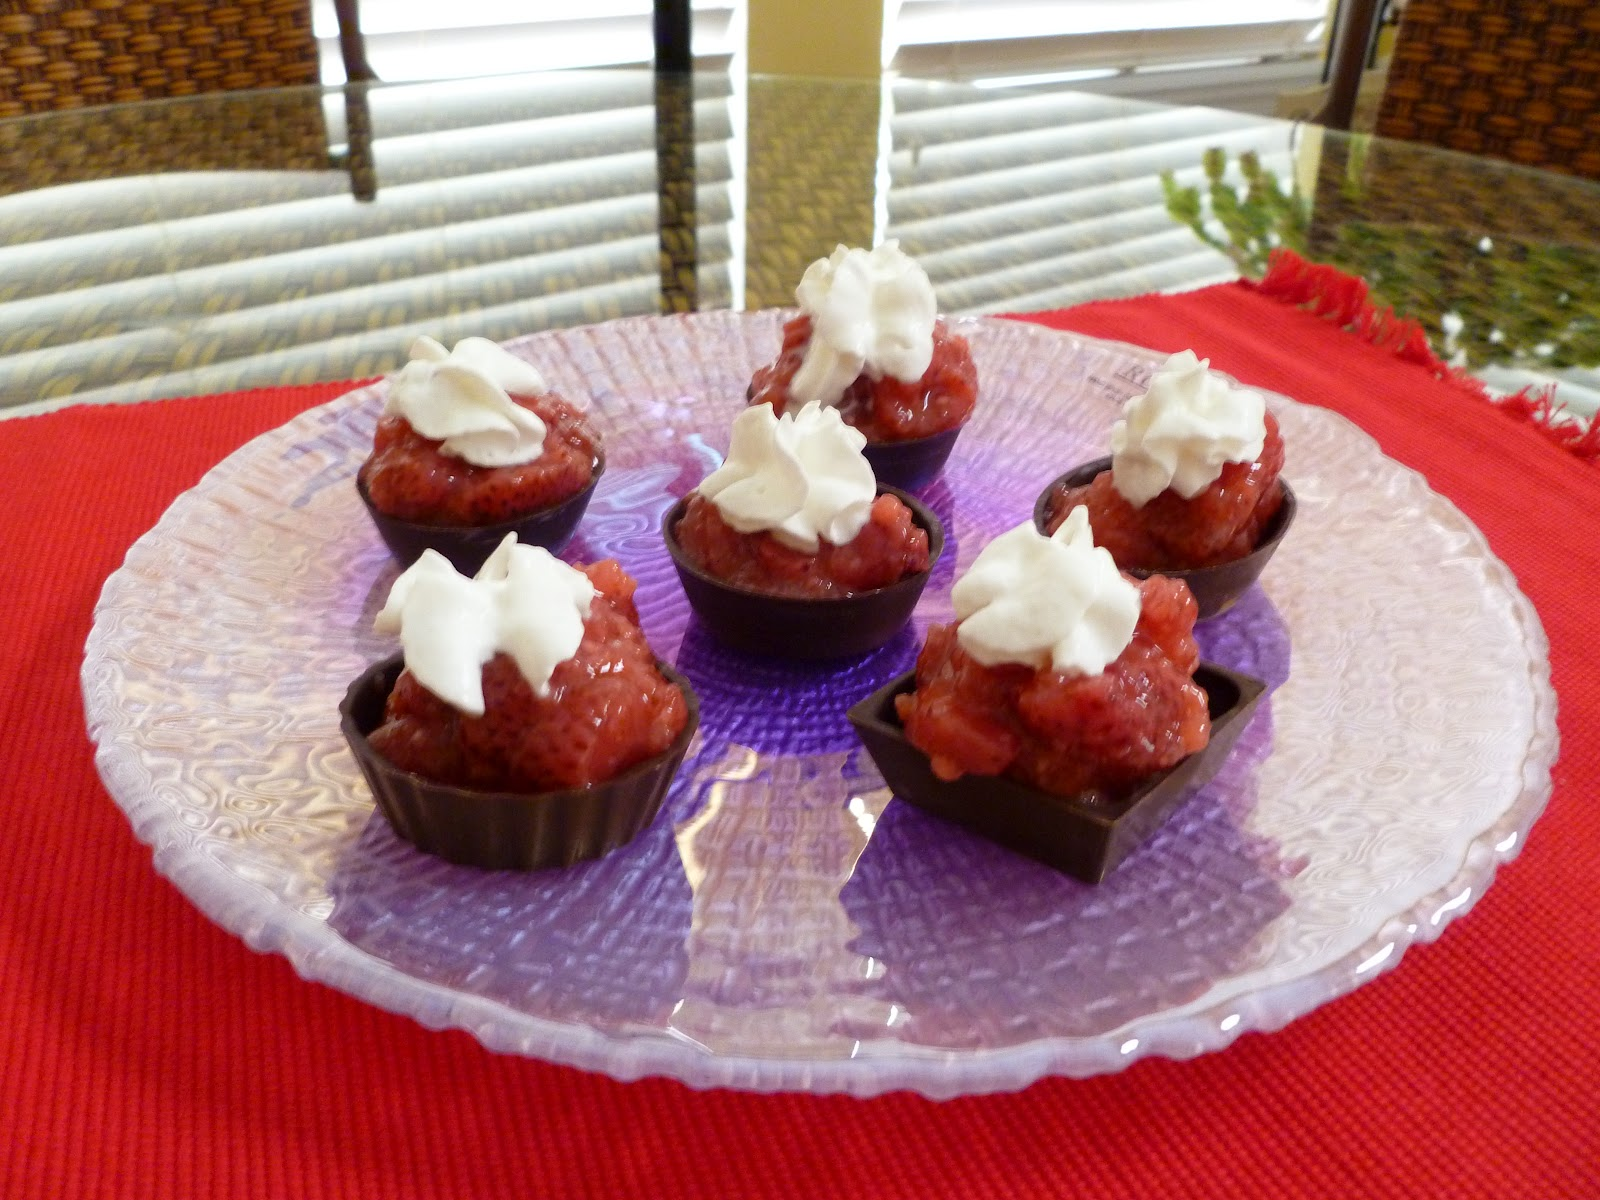 i like to bake and cook a quick and easy snack or dessert mini chocolate cups with strawberries. Black Bedroom Furniture Sets. Home Design Ideas